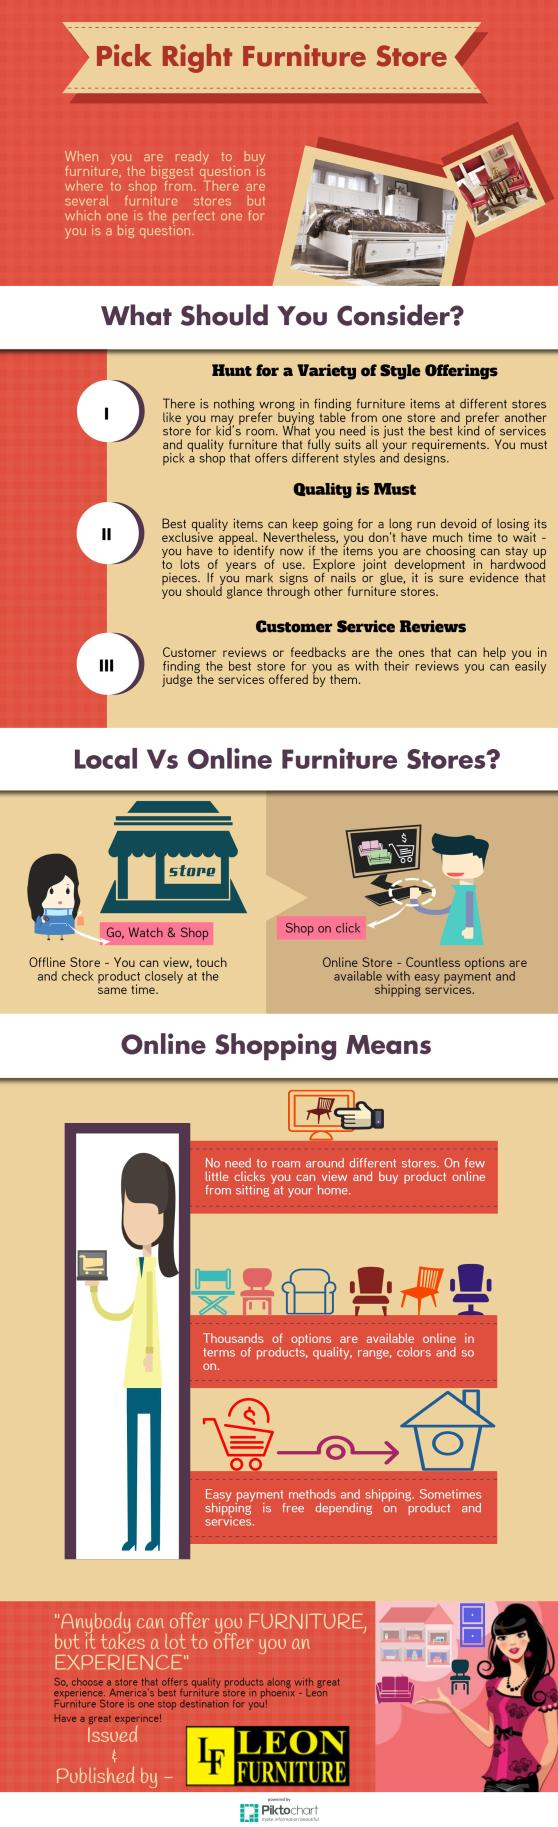 How to Pick Right Furniture Store